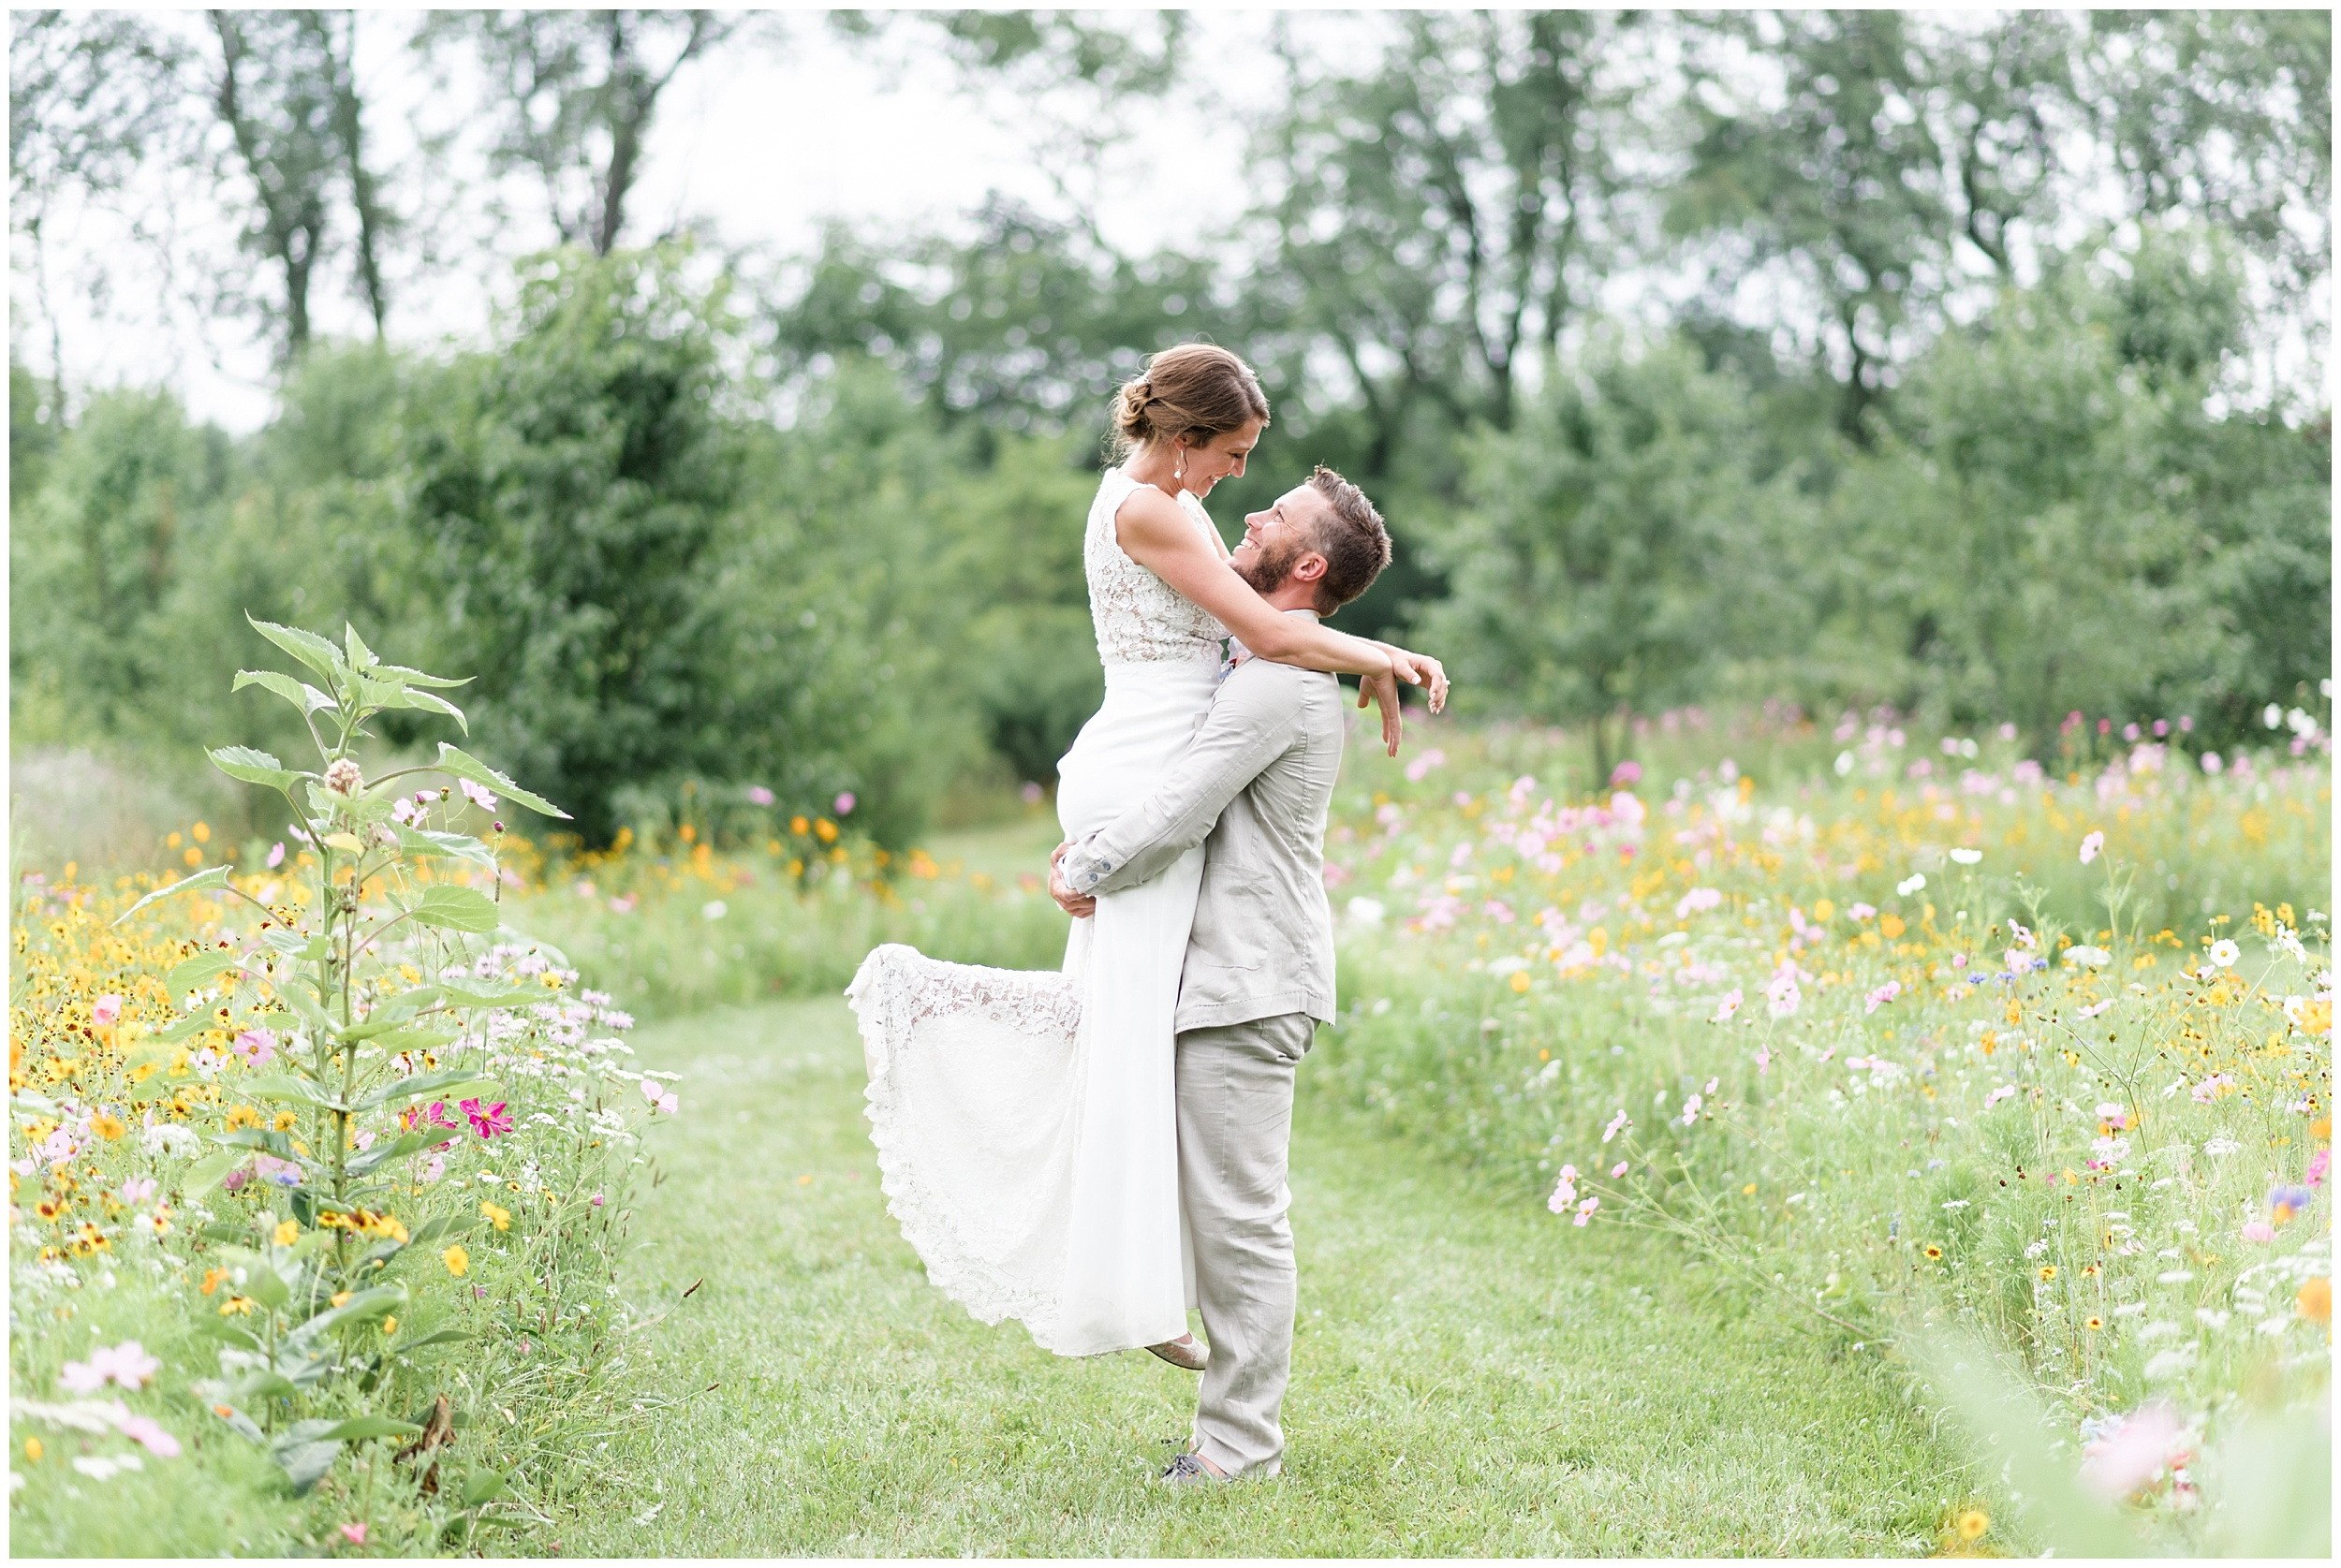 Whimsical-Ethereal-July-Kalamazoo-Wedding-Bright-Airy-Documentary-Milwaukee-Photographer_0077.jpg